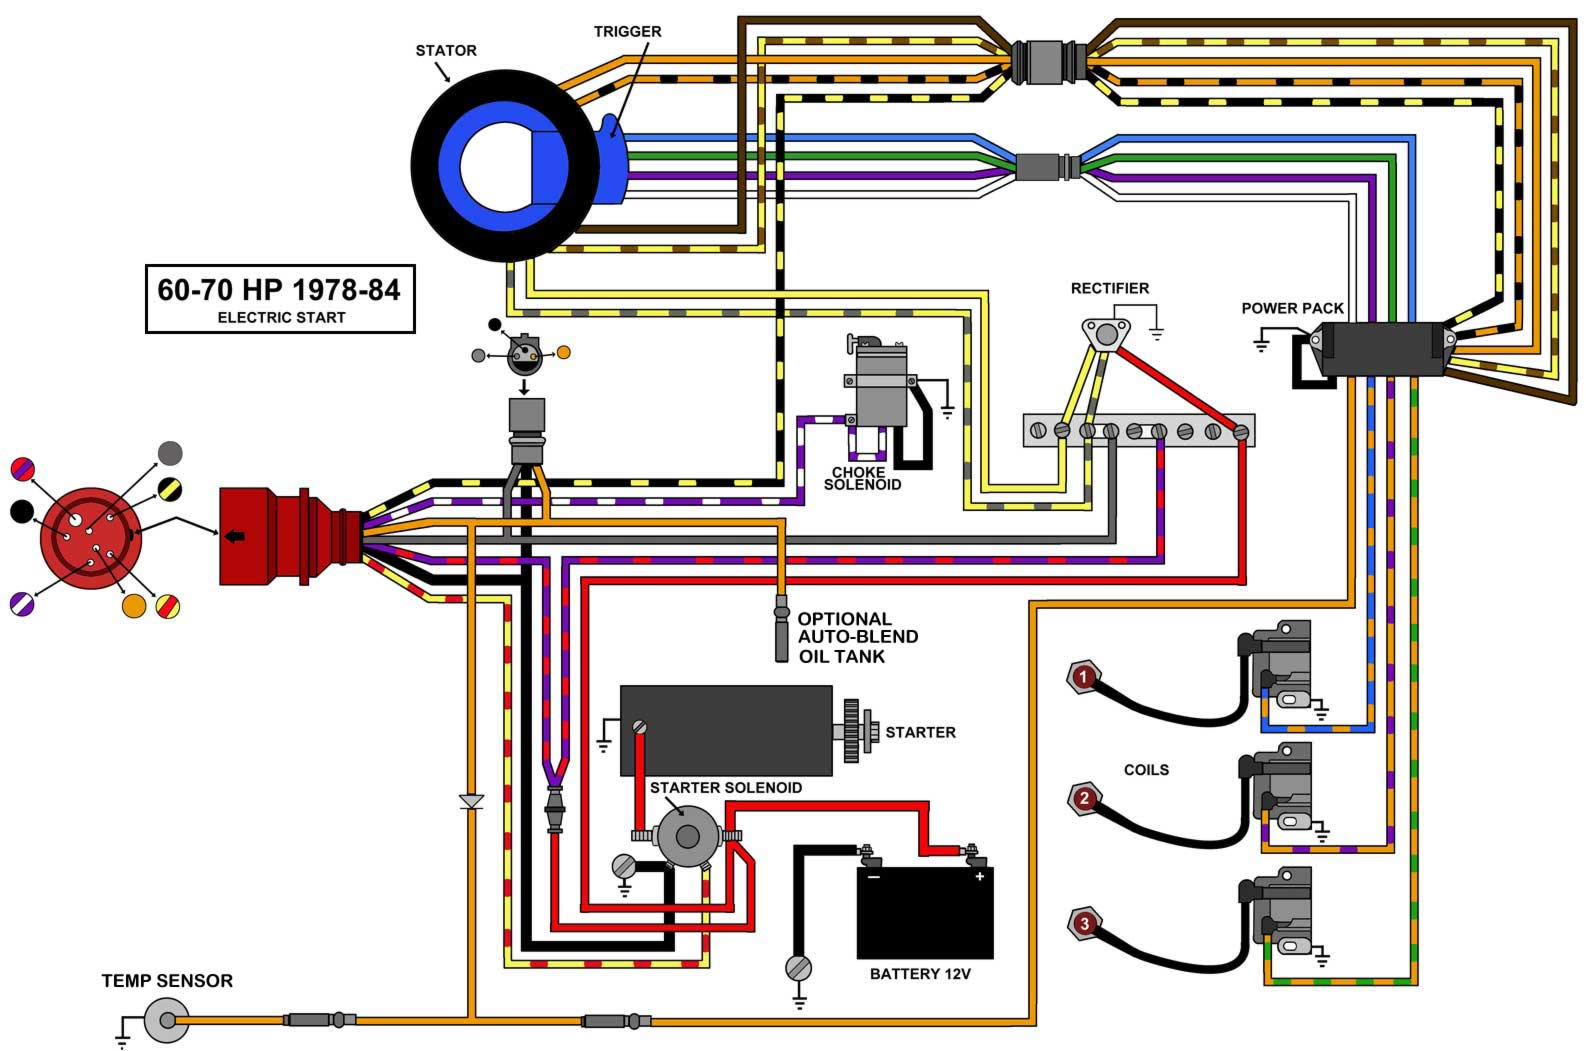 Wiring Diagram Tachometer To Coil Packs | Wiring Diagram on